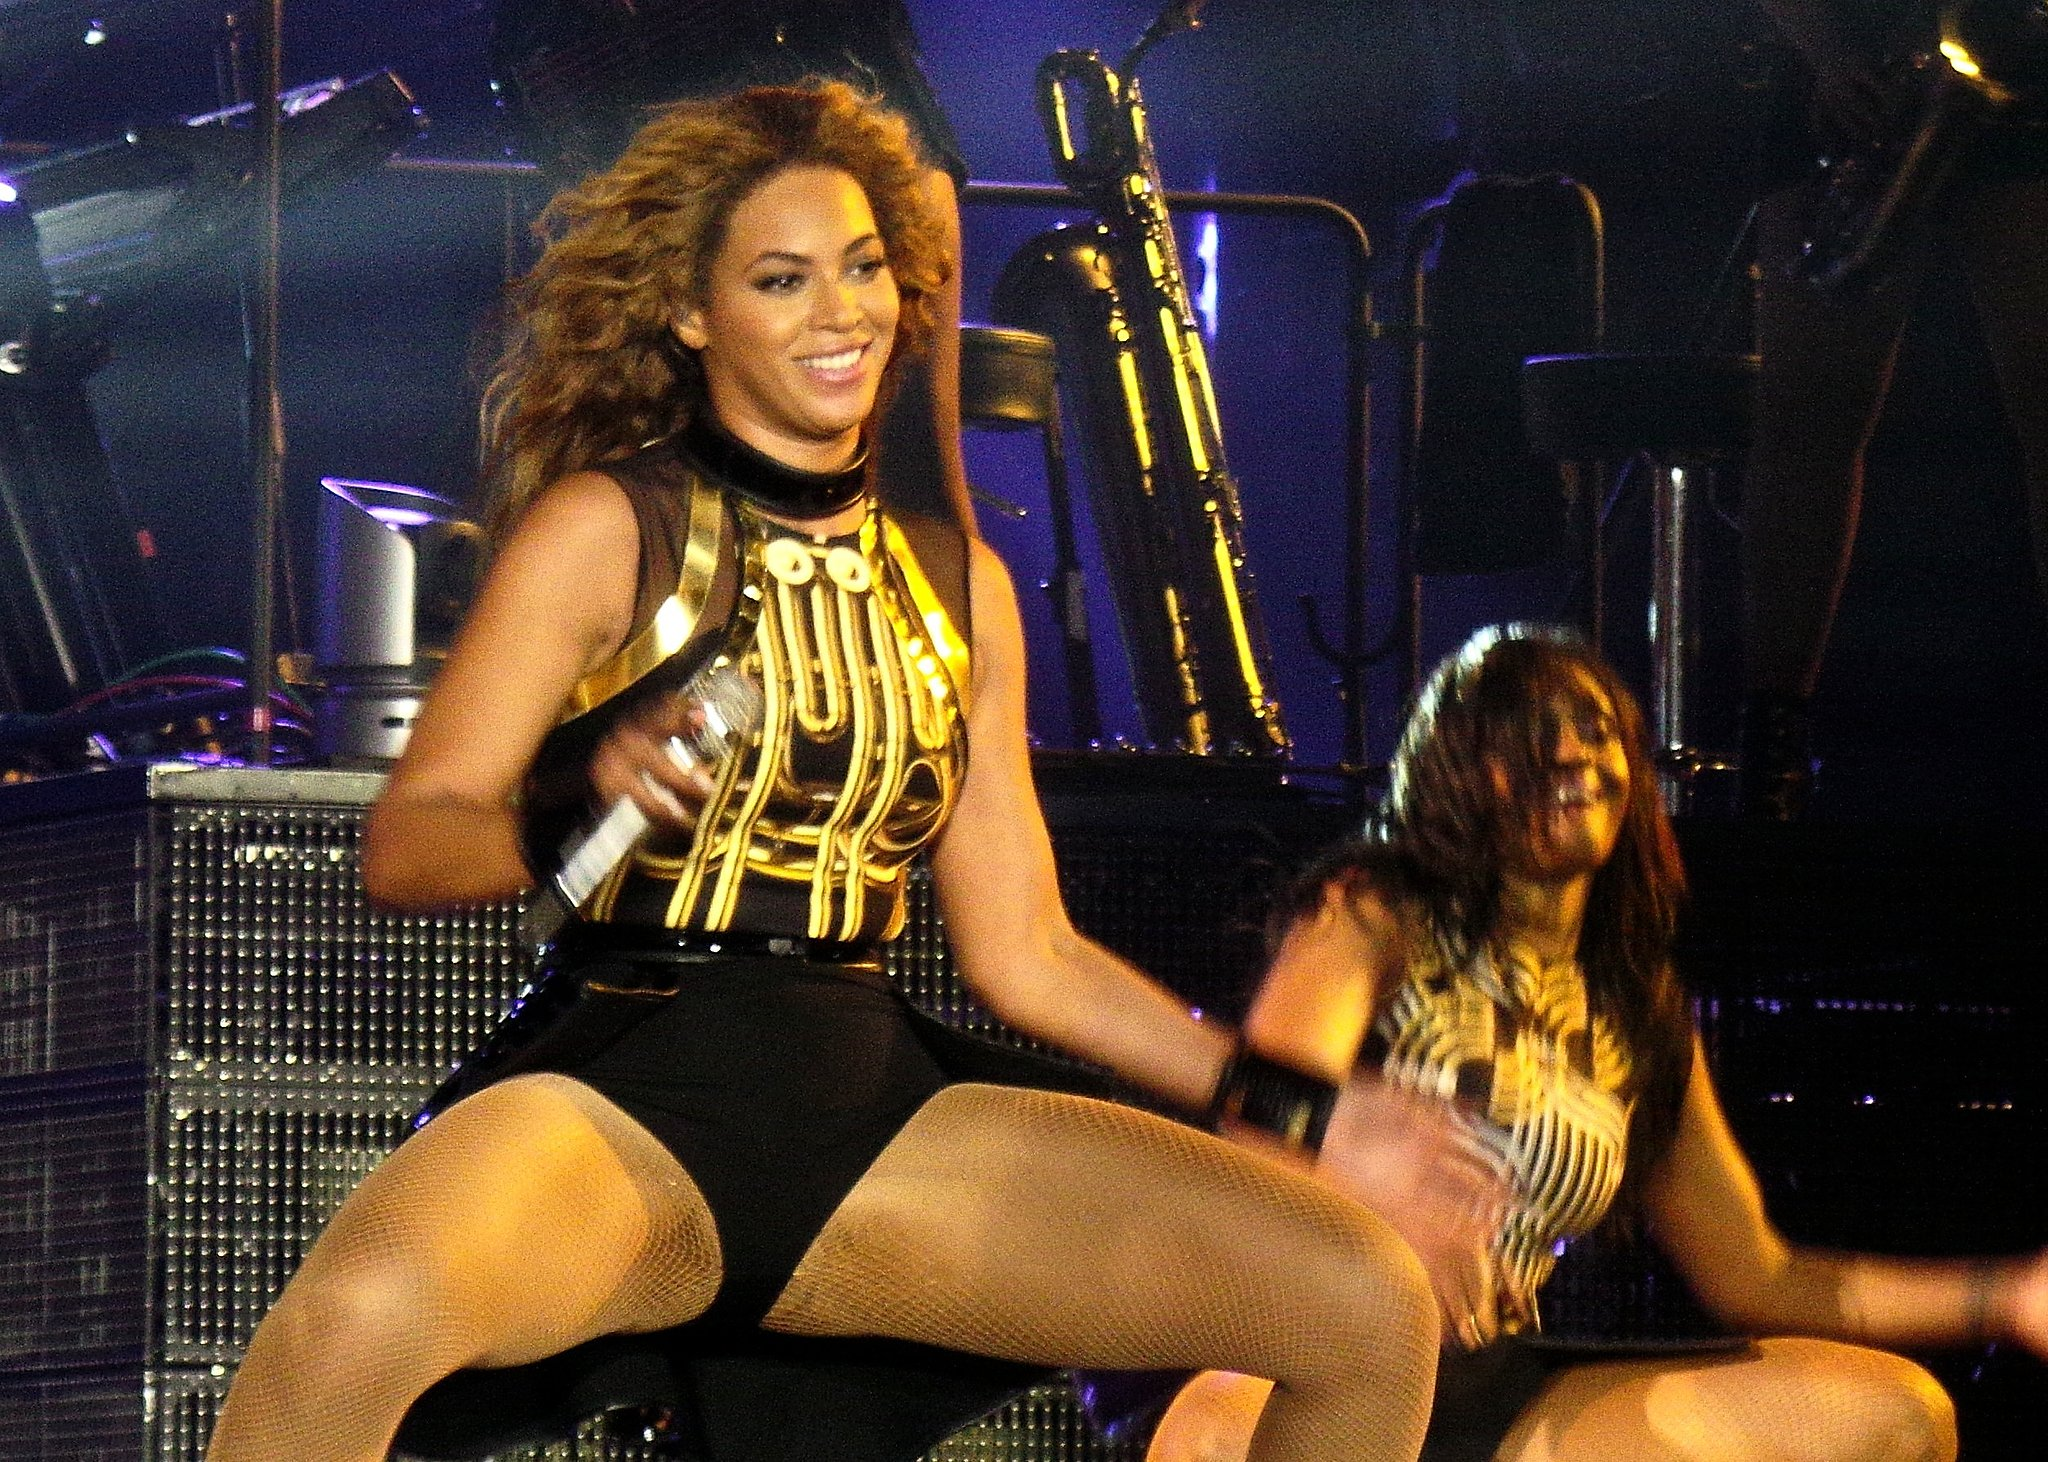 A closer look at Beyoncé's black and gold look.